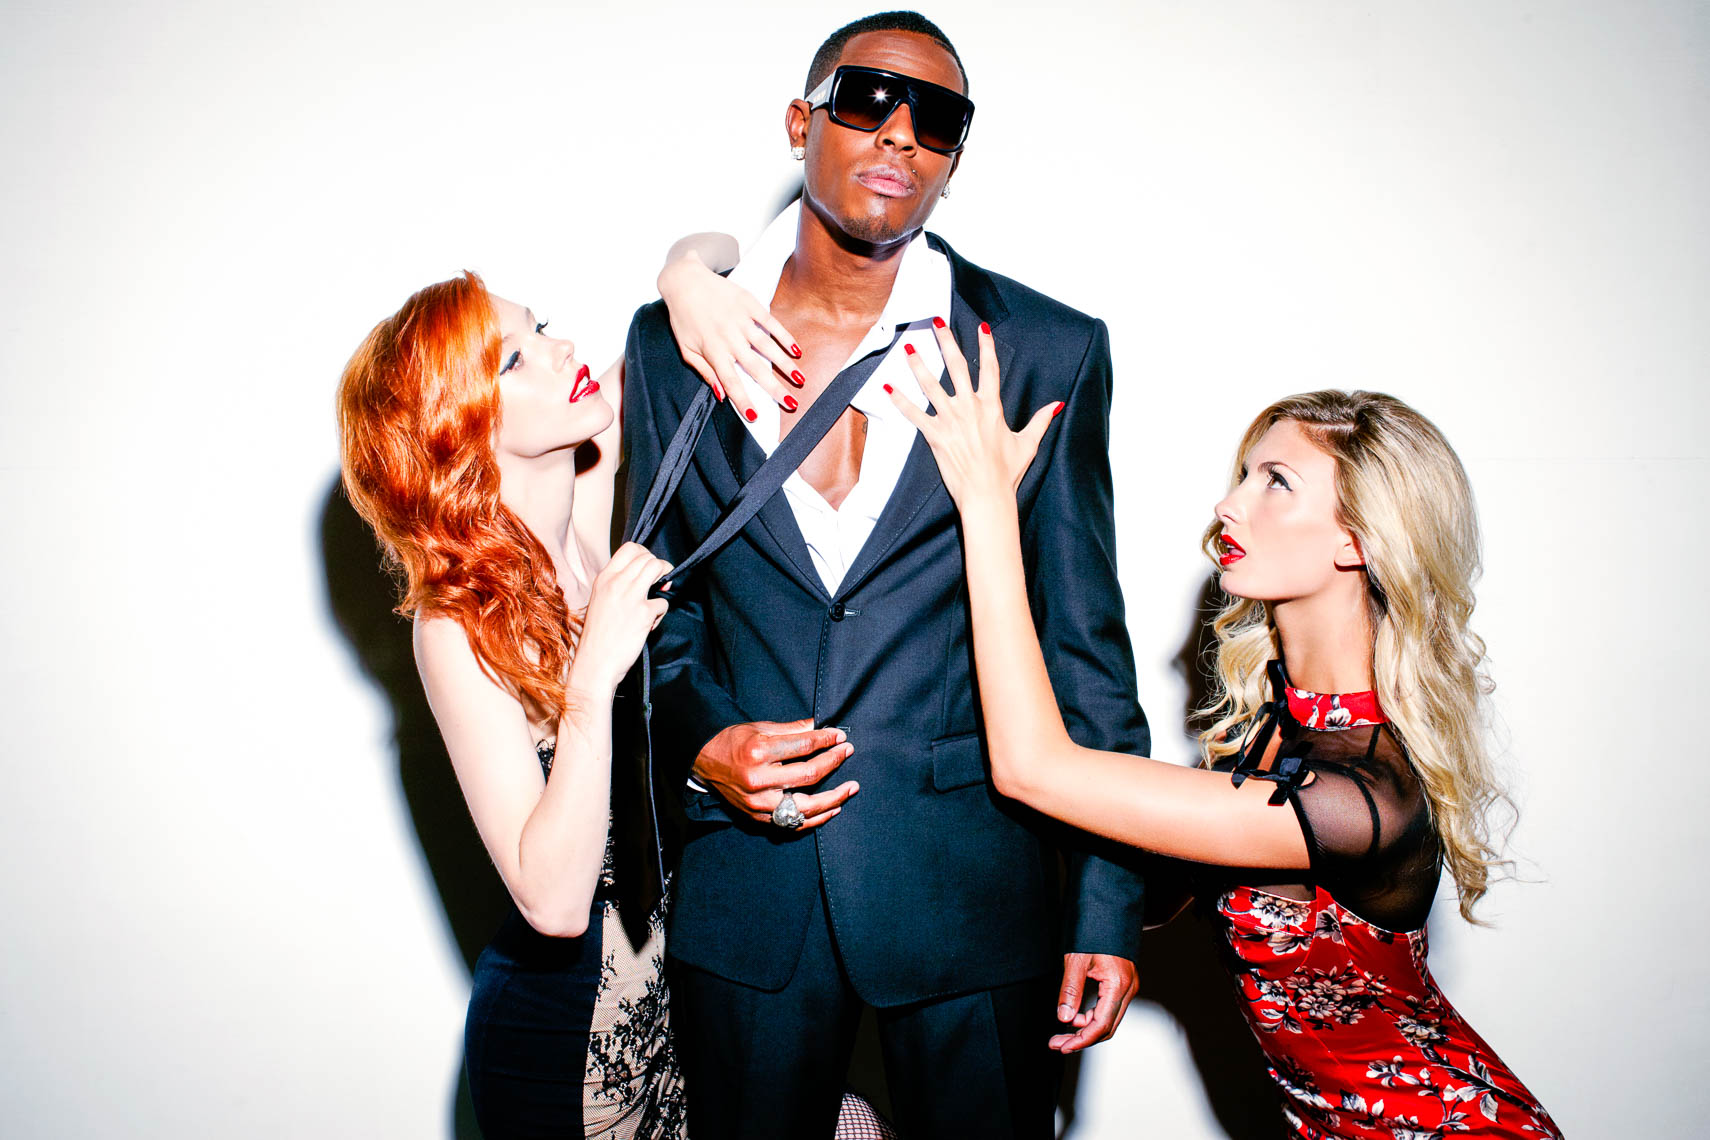 Hyro da hero dressed in a suit and sunglasses with a blonde and a red hair girl hanging off him